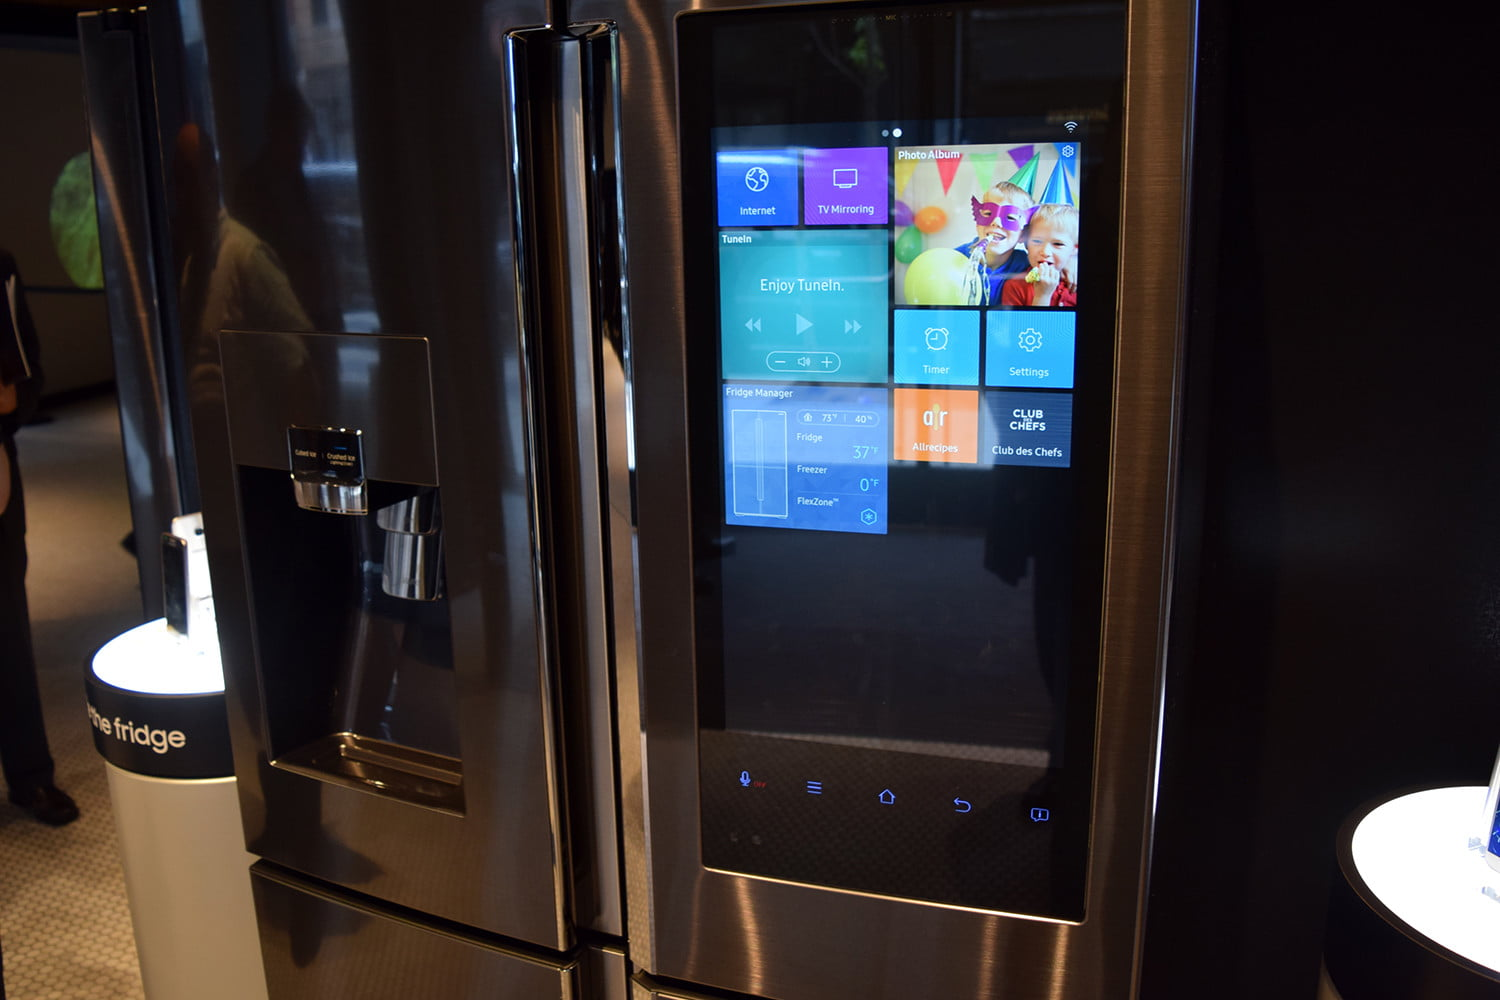 wiring diagram for whirlpool refrigerator eye eyeshadow placement ice maker parts solenoid, whirlpool, free engine image user manual download